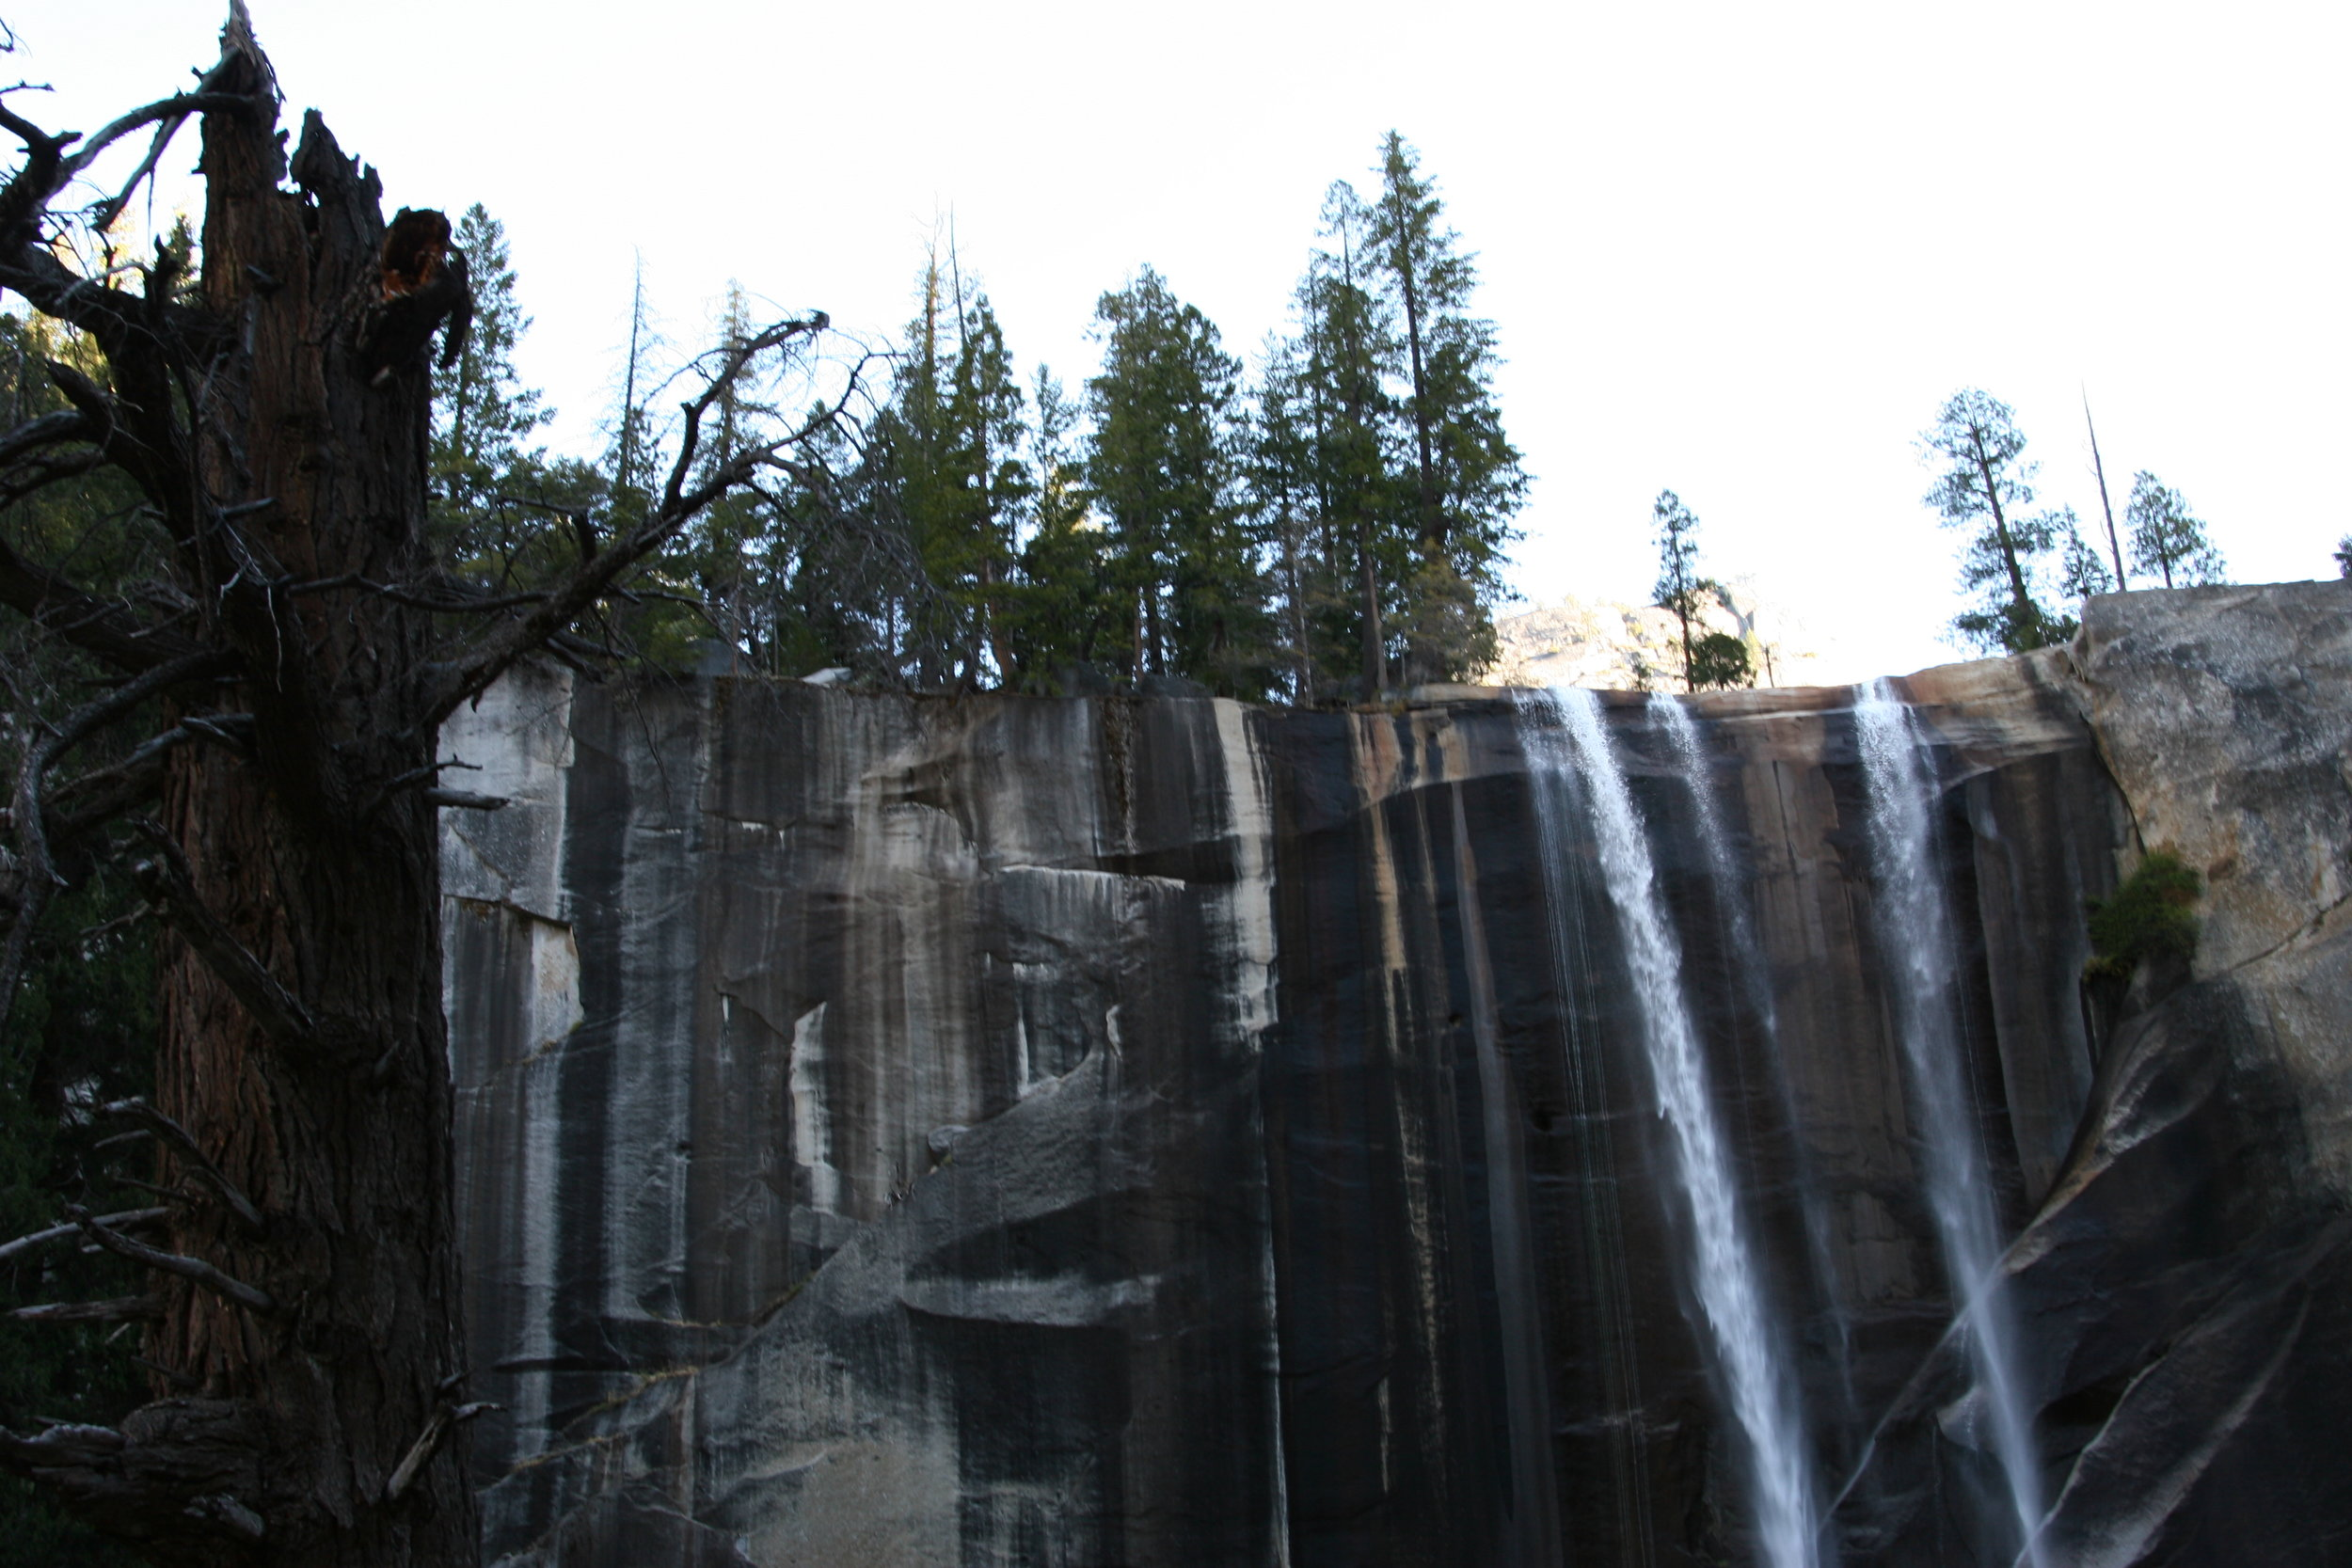 Like going up to Vernal Falls, the route to Clouds Rest ascends via the Mist Trail